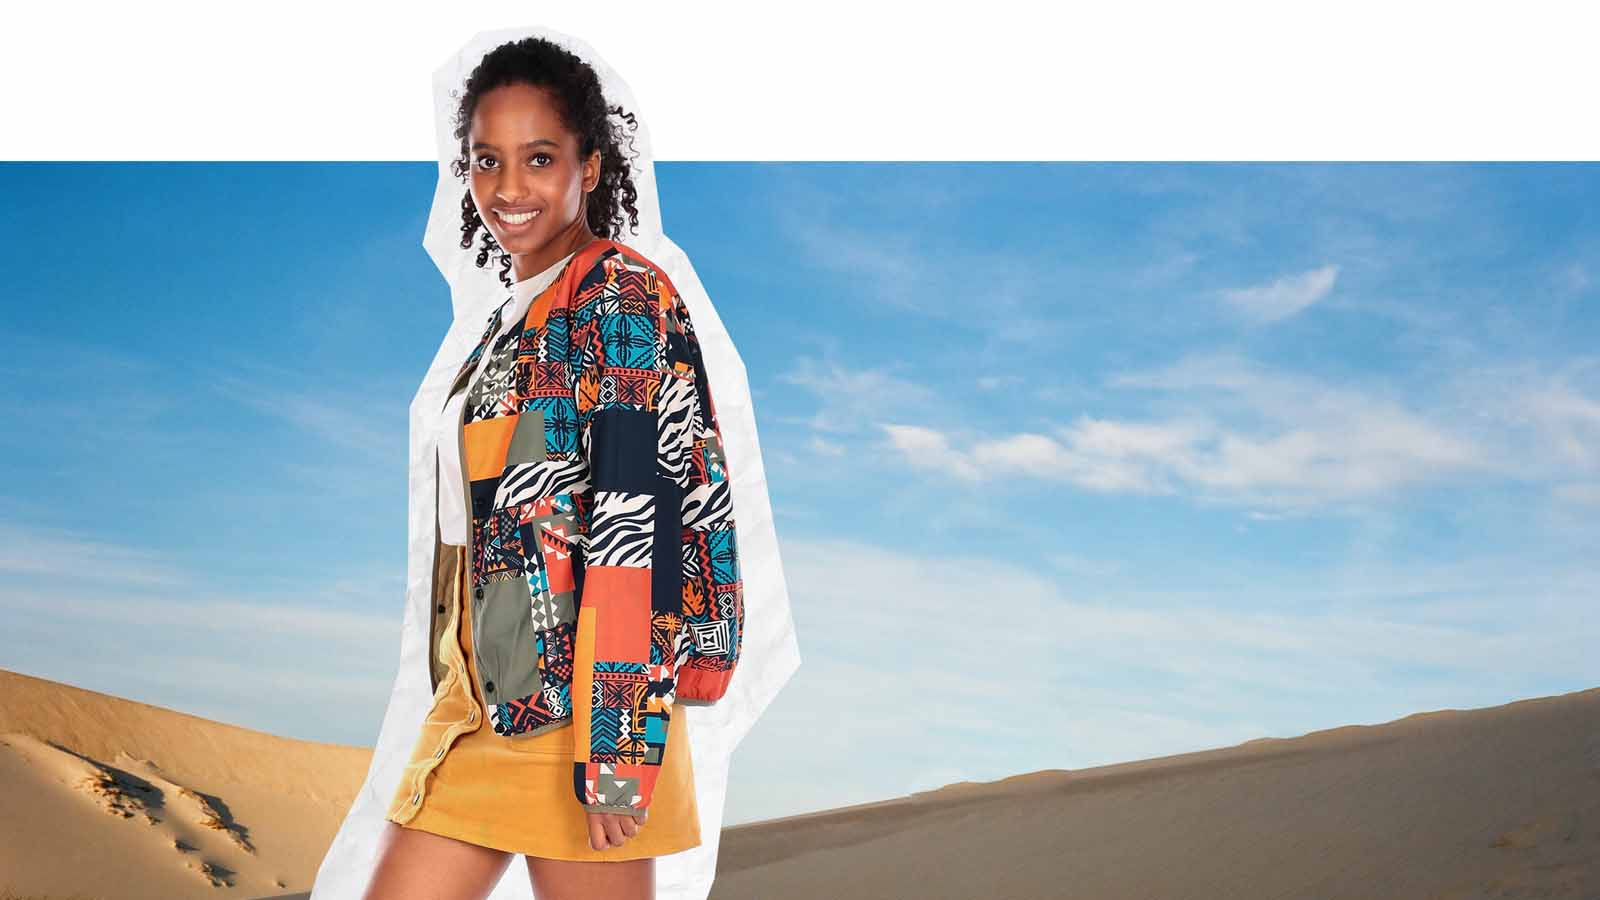 Irie Daily S/S 2022 Women's Streetwear Preview